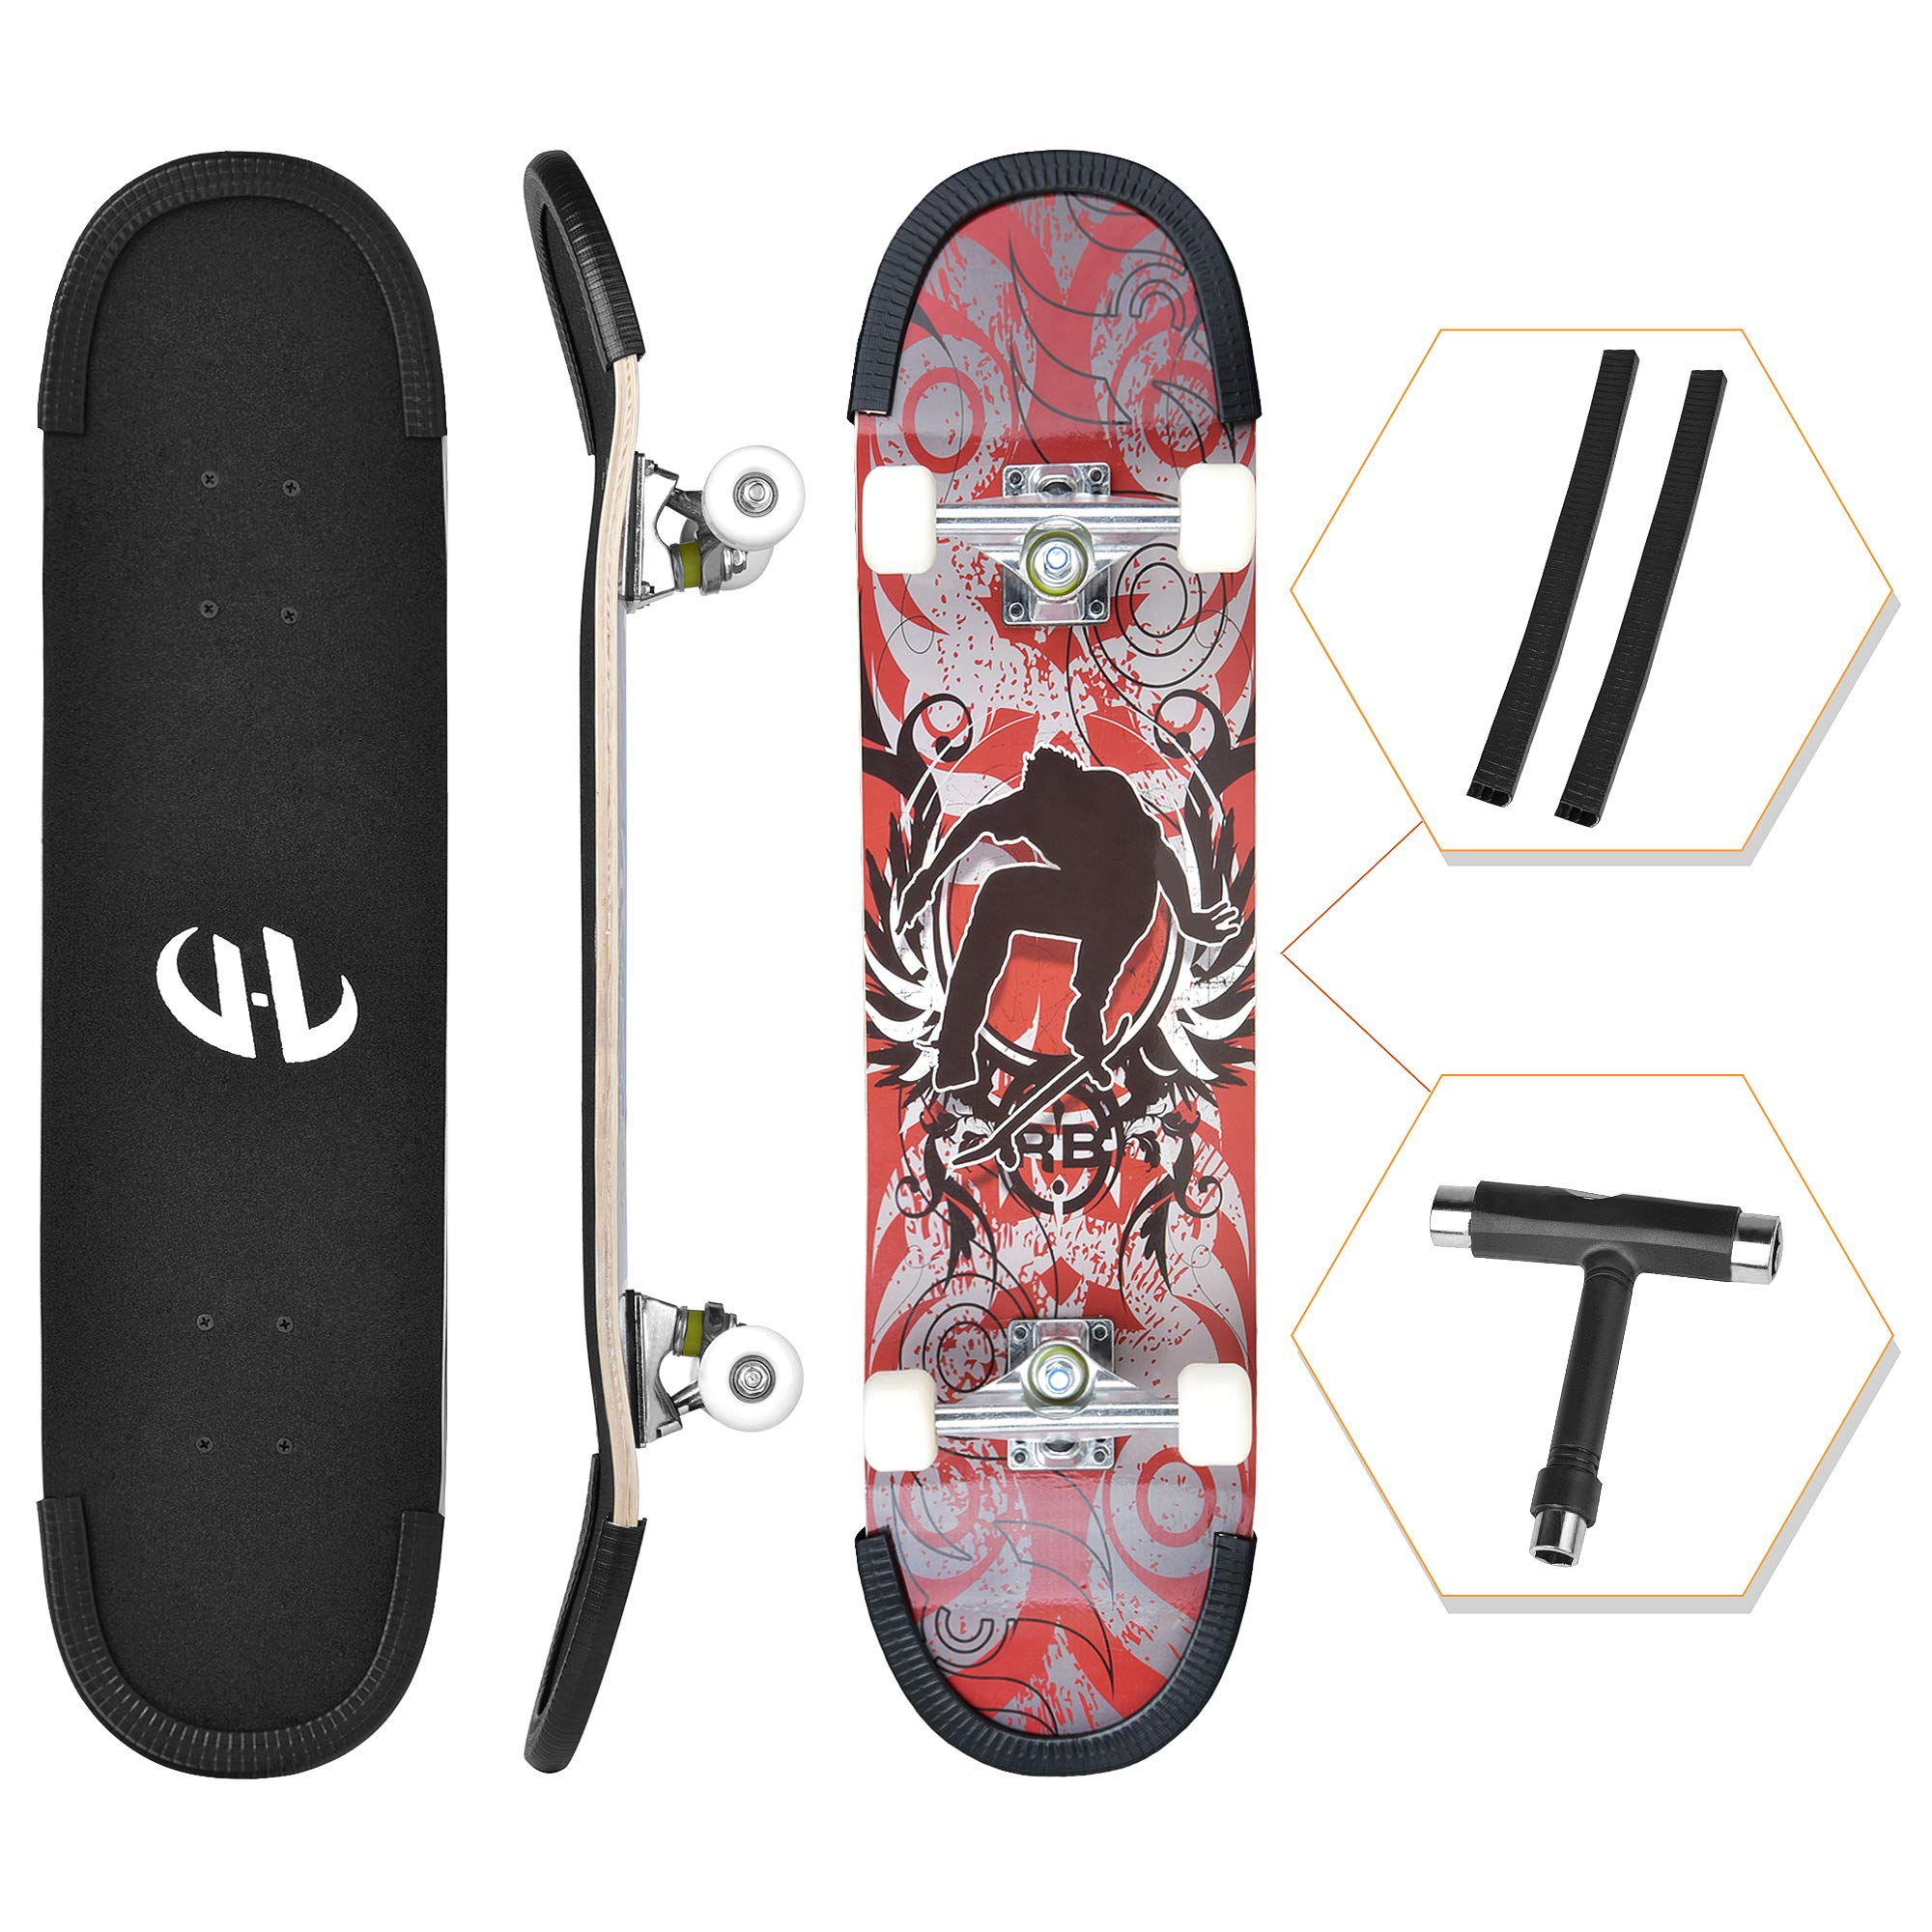 ENJUCOM 31'' x 8'' Complete PRO Skateboard for Beginner, Extreme Sports